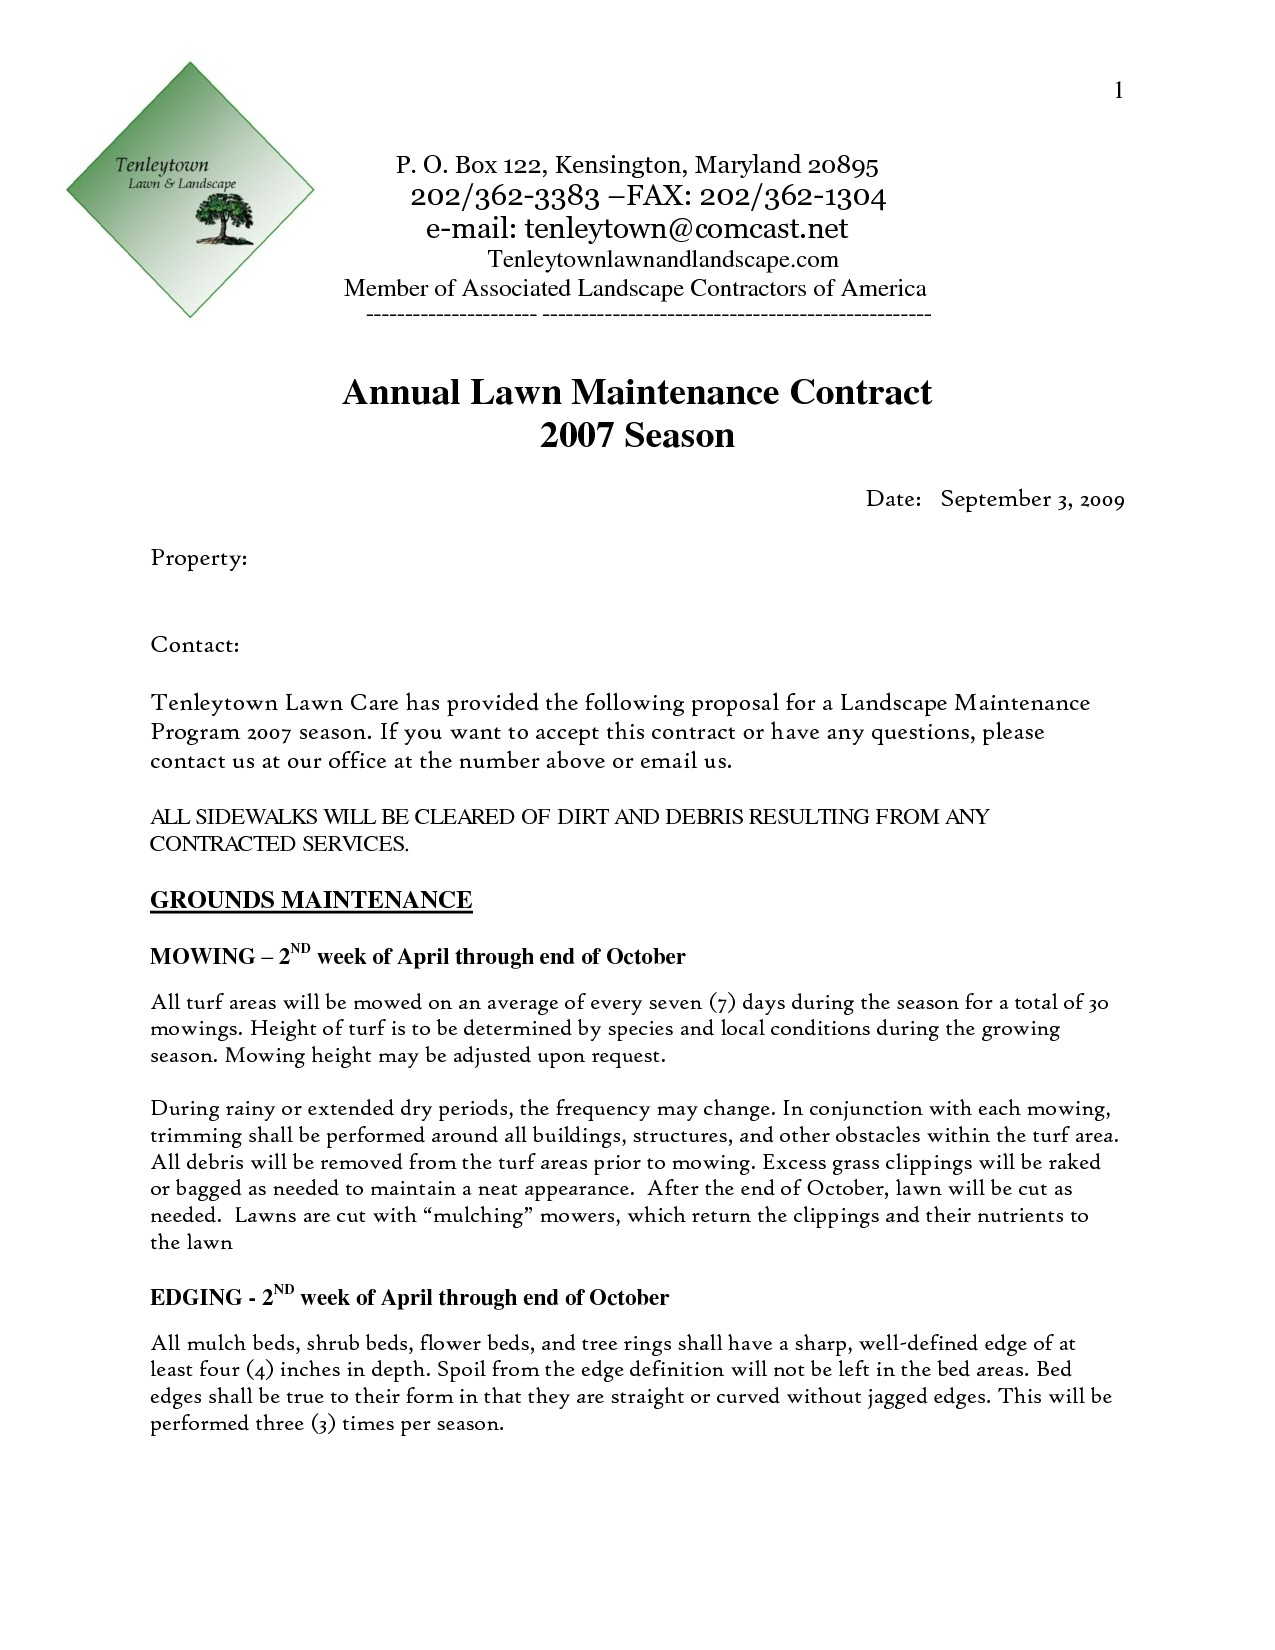 Landscape Maintenance Proposal Template Landscaping Proposal Sample World Of Examples